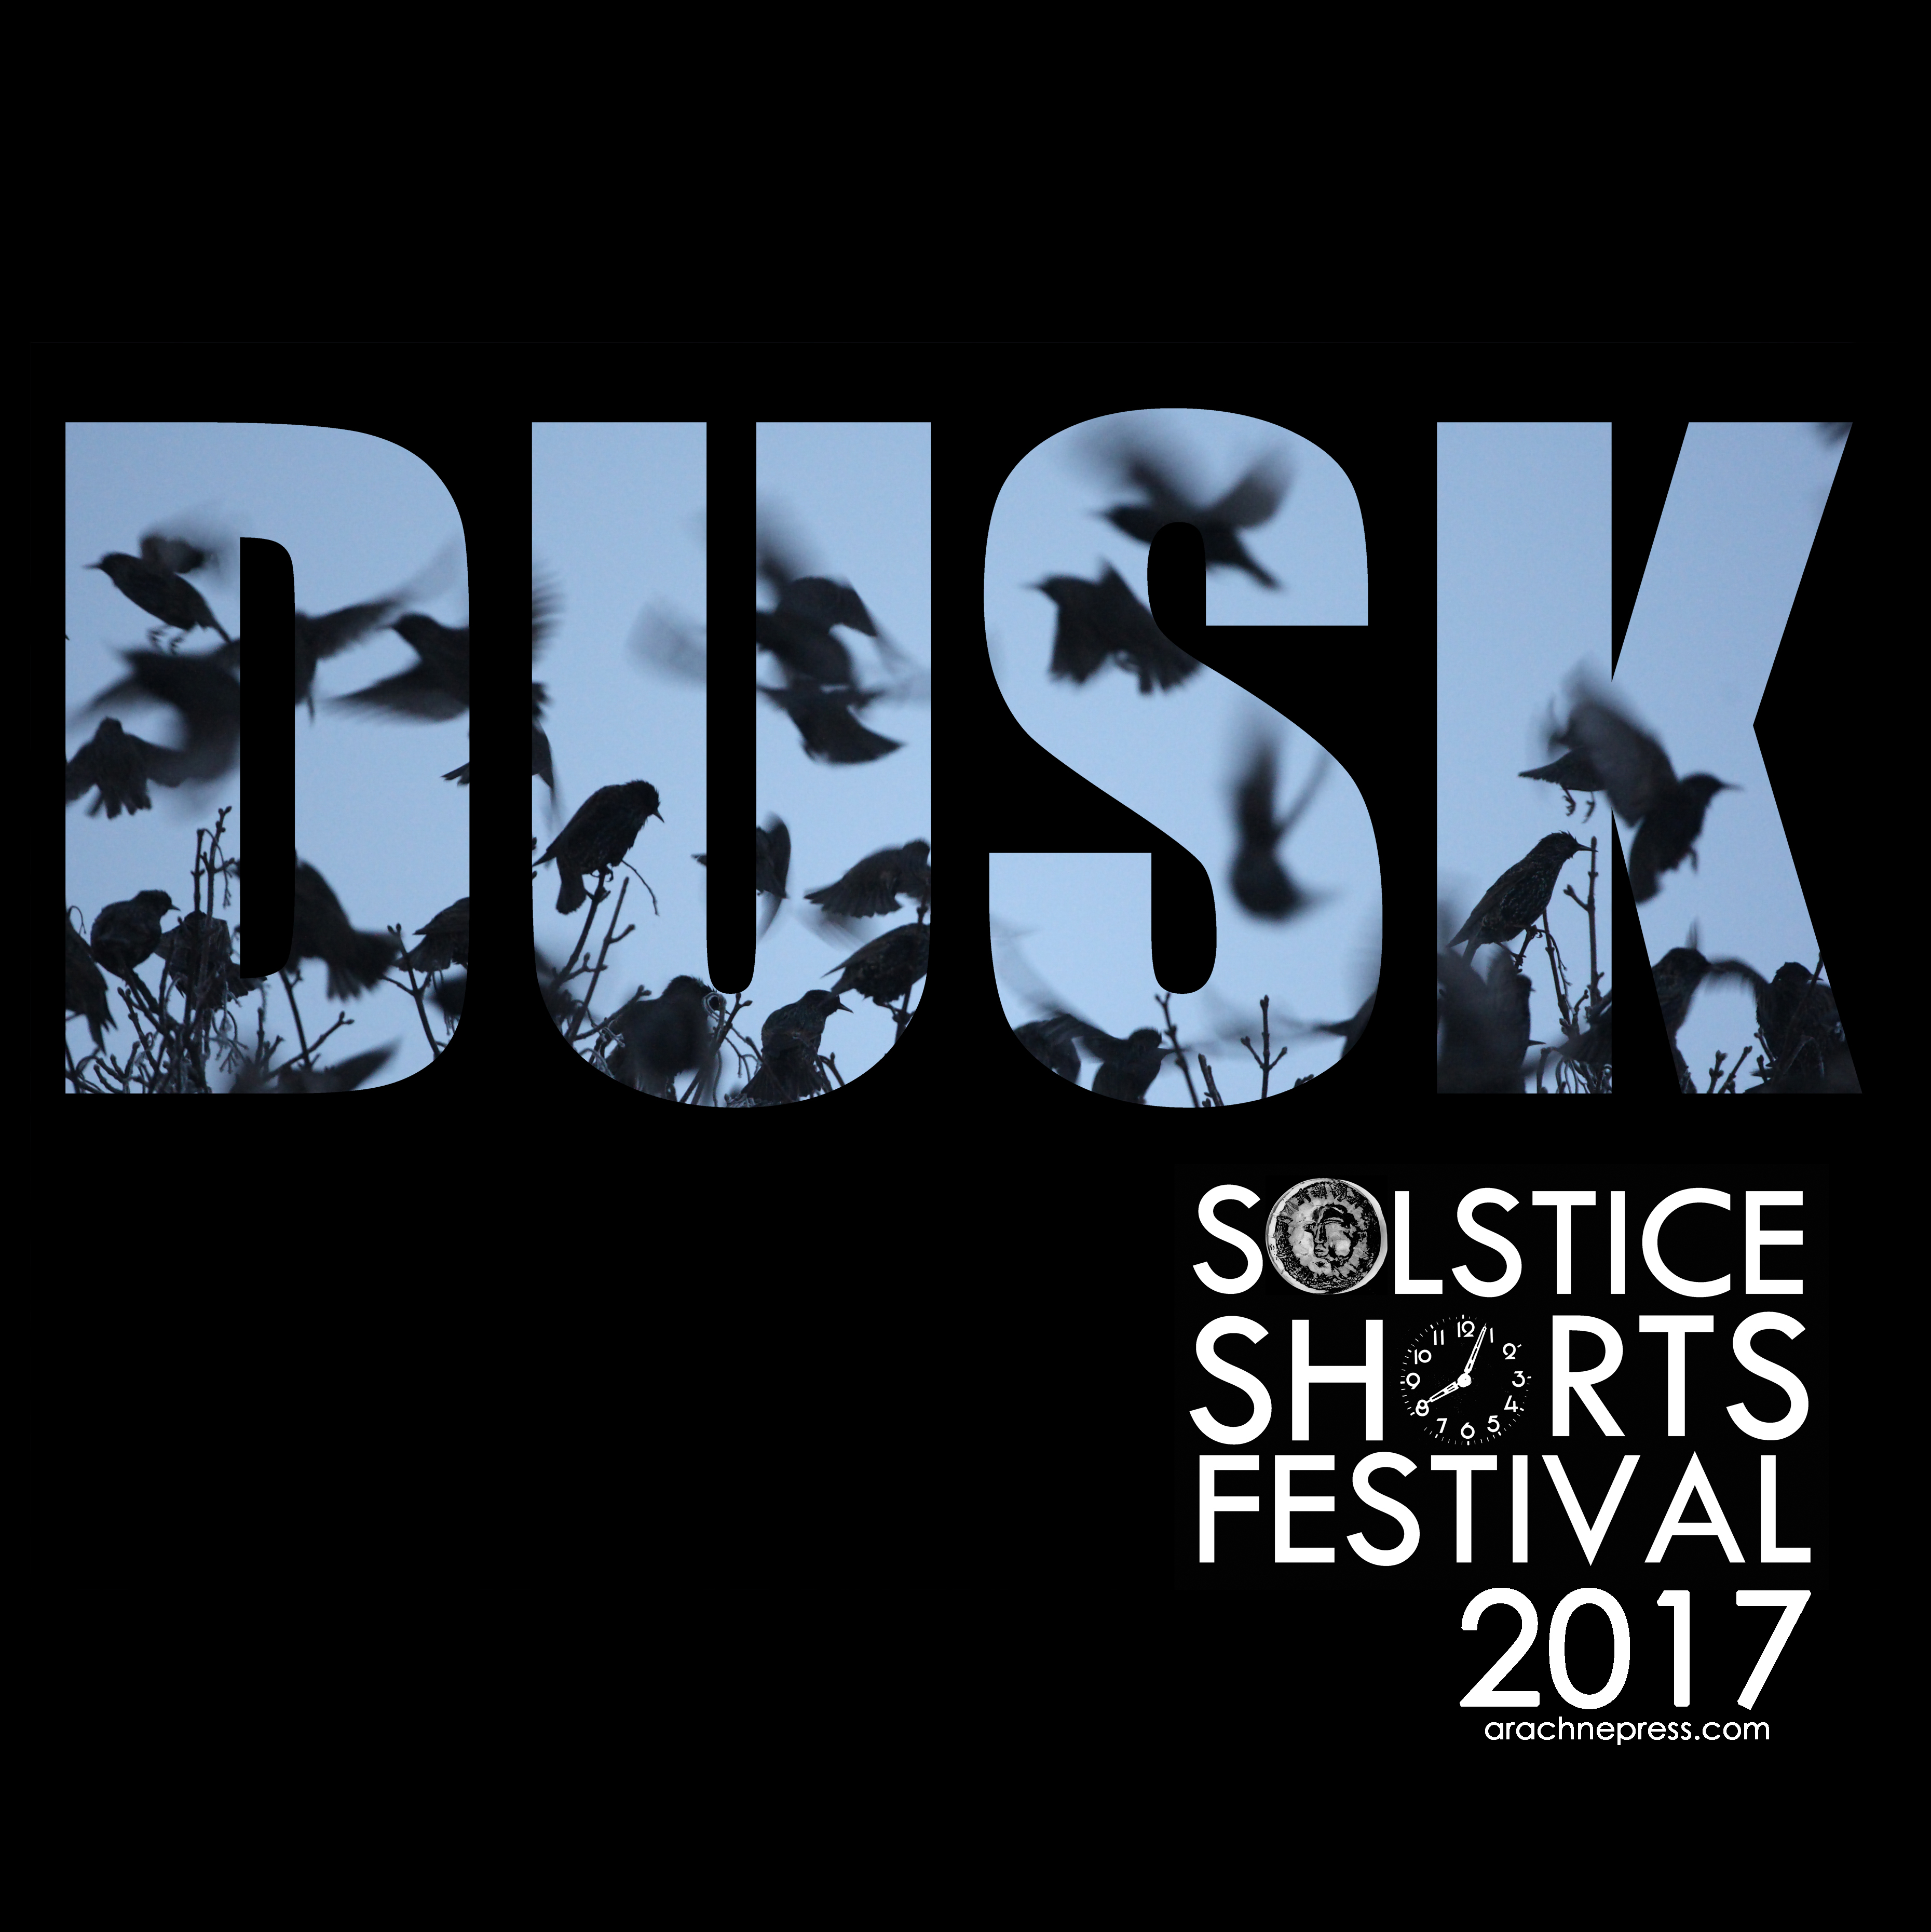 Call Out : Solstice Shorts Festival: Dusk | ShortStops